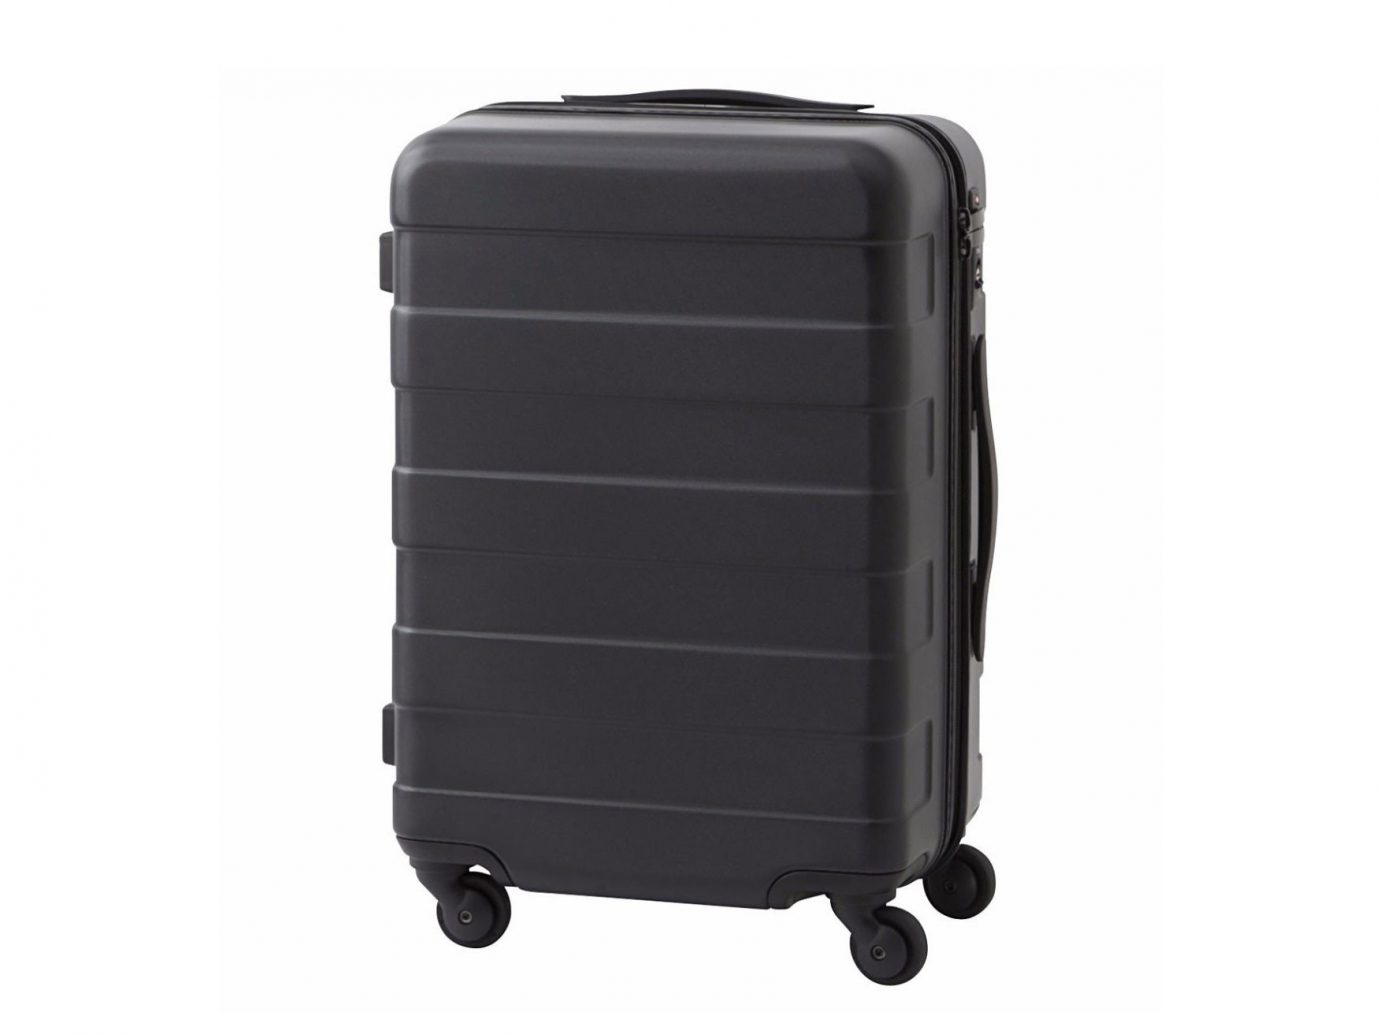 Influencers + Tastemakers Japan Photo Diary Tokyo black suitcase product product design hand luggage case